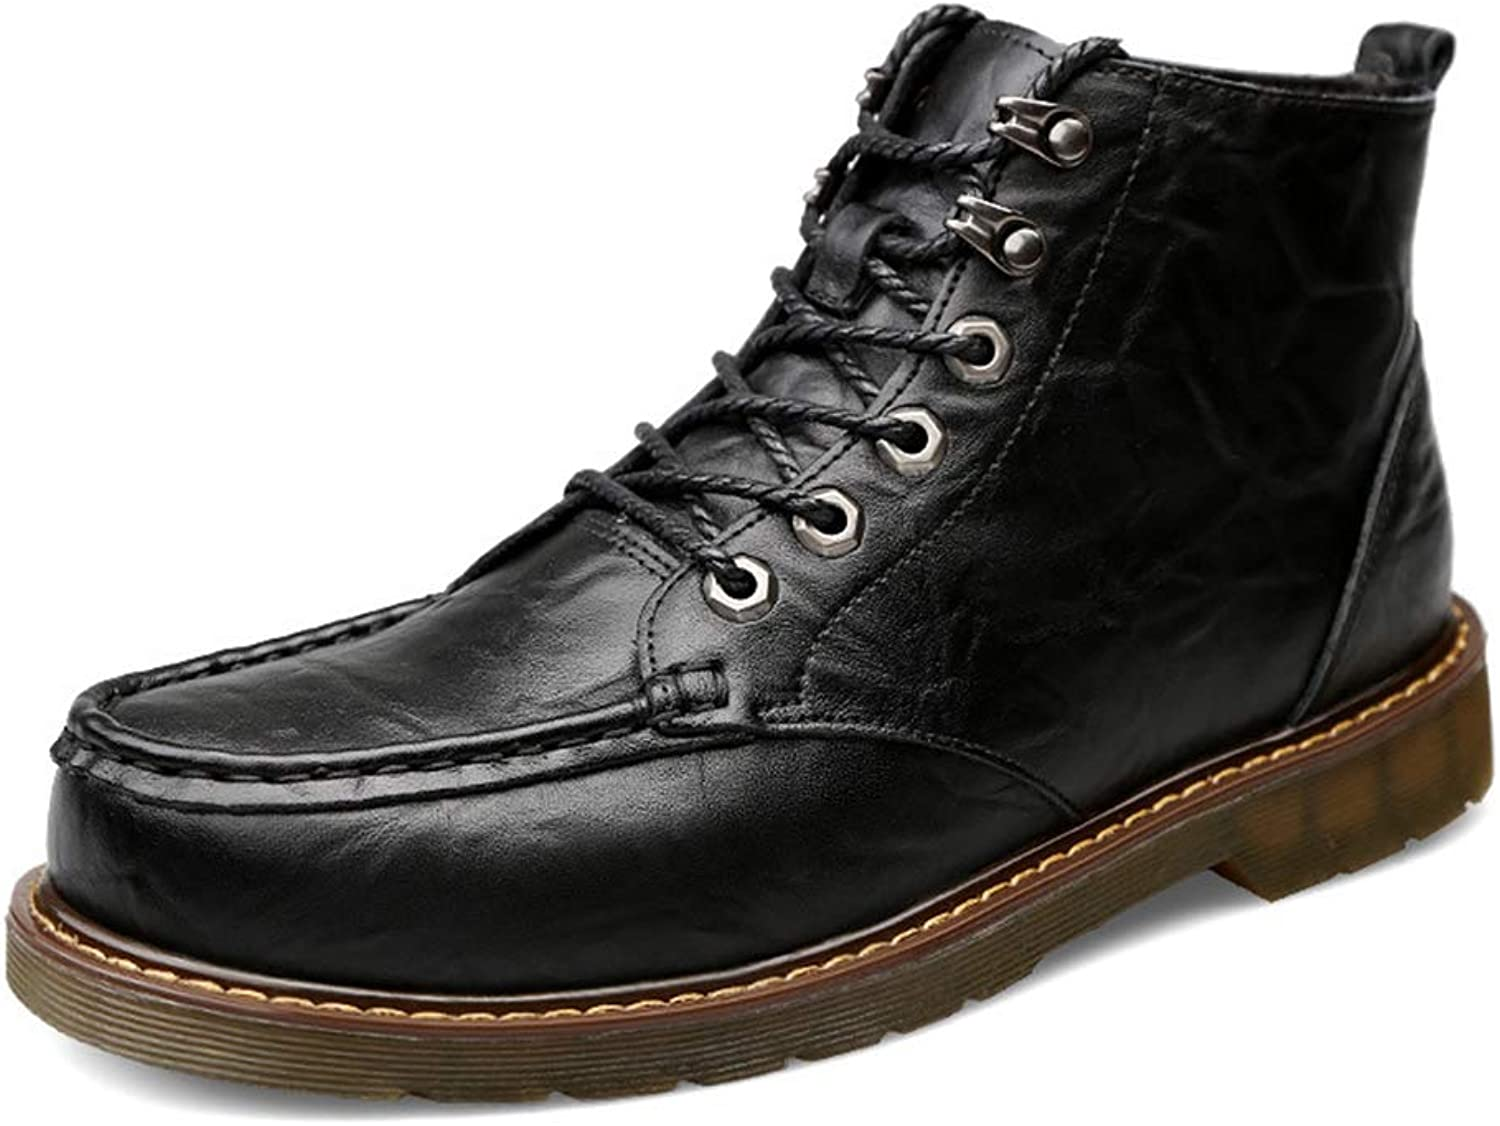 Men's Leather Boots Waterproof Men Boots Fall Winter New Leather shoes Outdoor Casual Hiking shoes,A,41